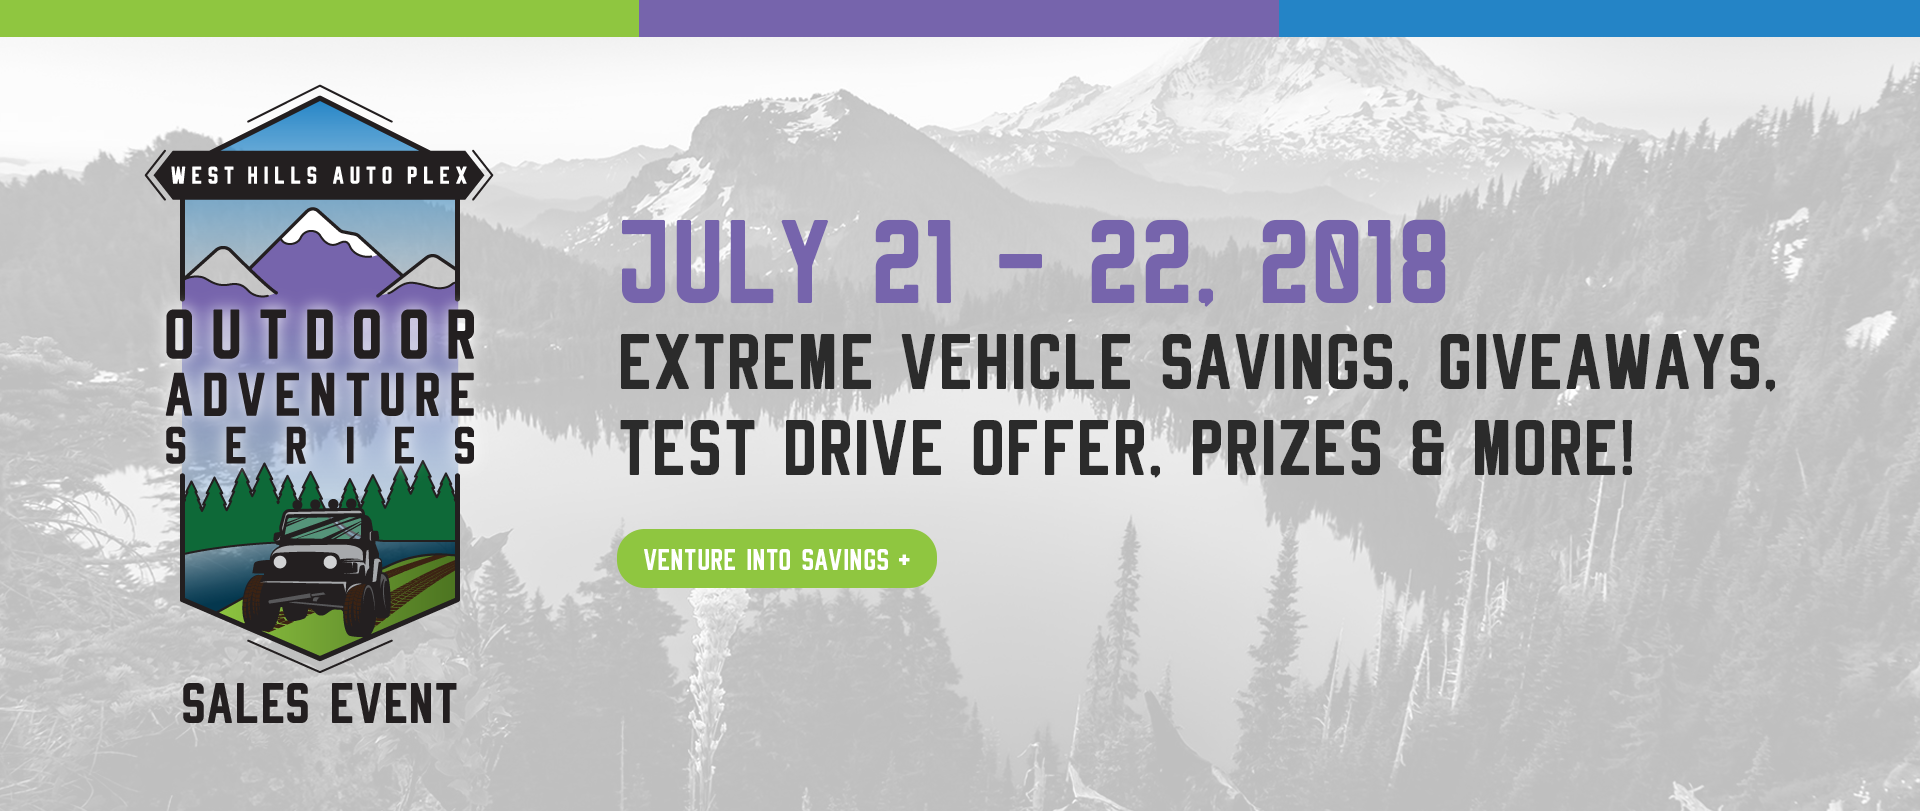 Outdoor Adventure Series Sales Event